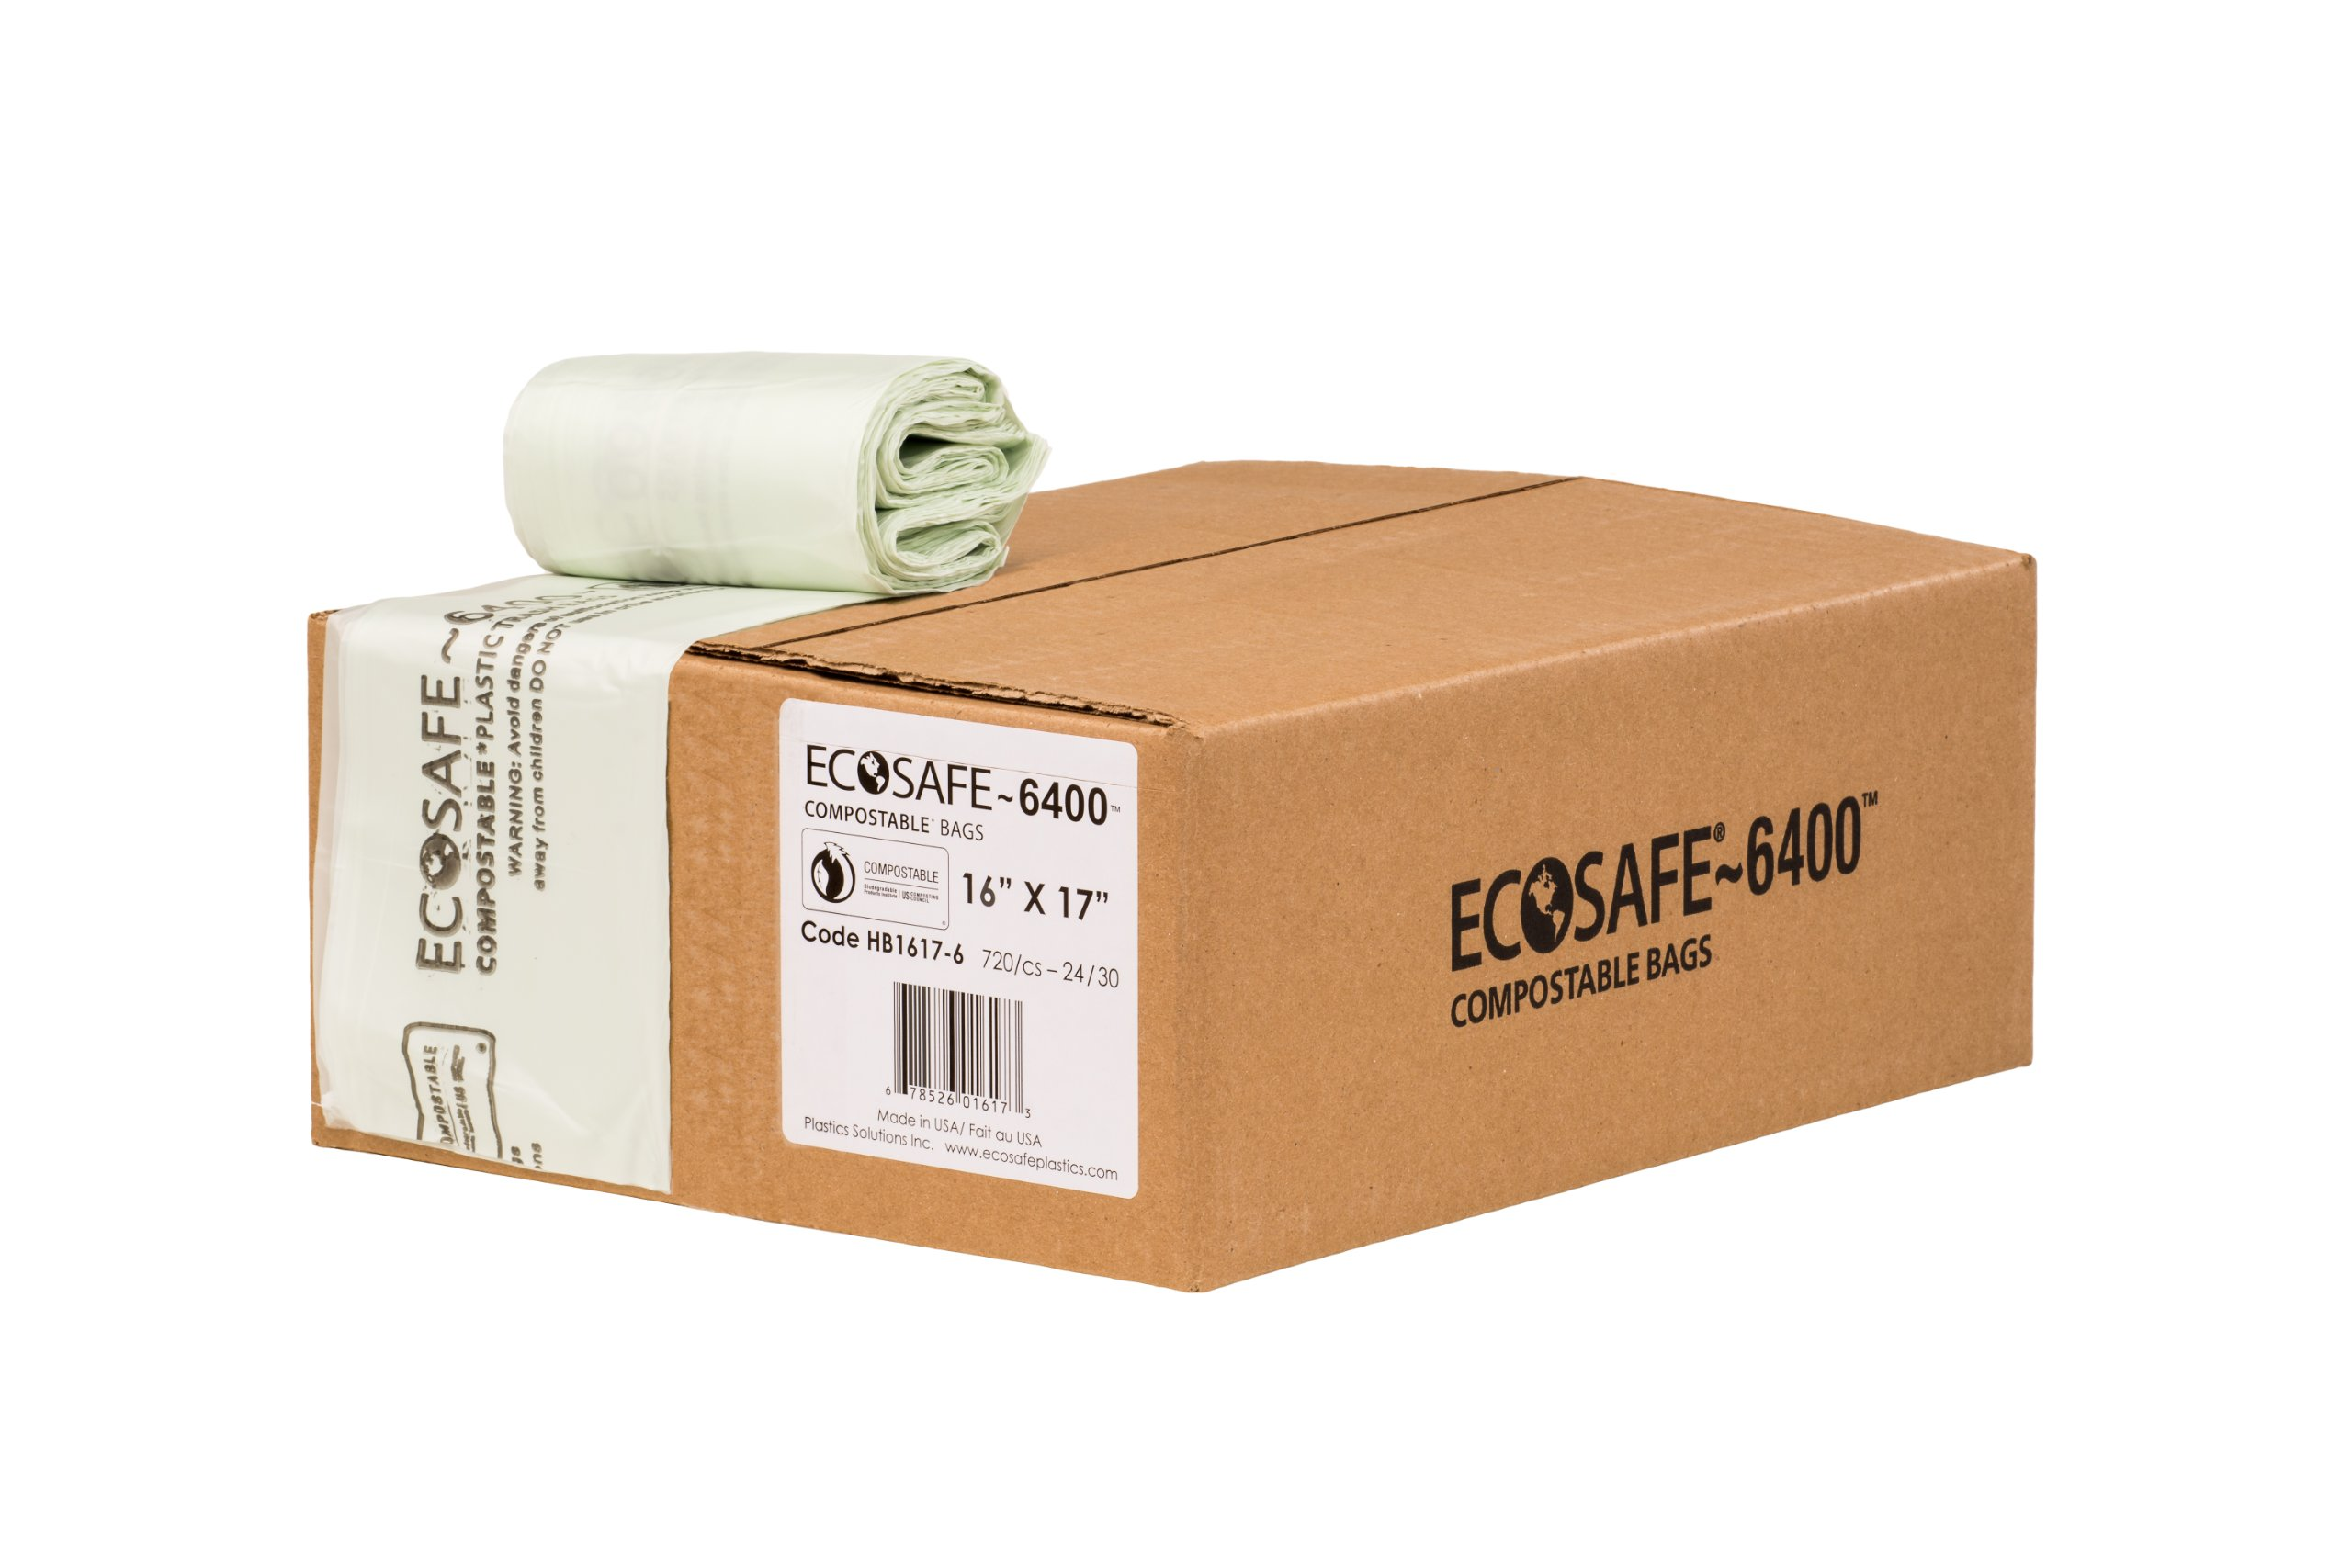 EcoSafe-6400 HB1617-6 Compostable Bag, Certified Compostable, 2.5-Gallon, Green (Pack of 720)